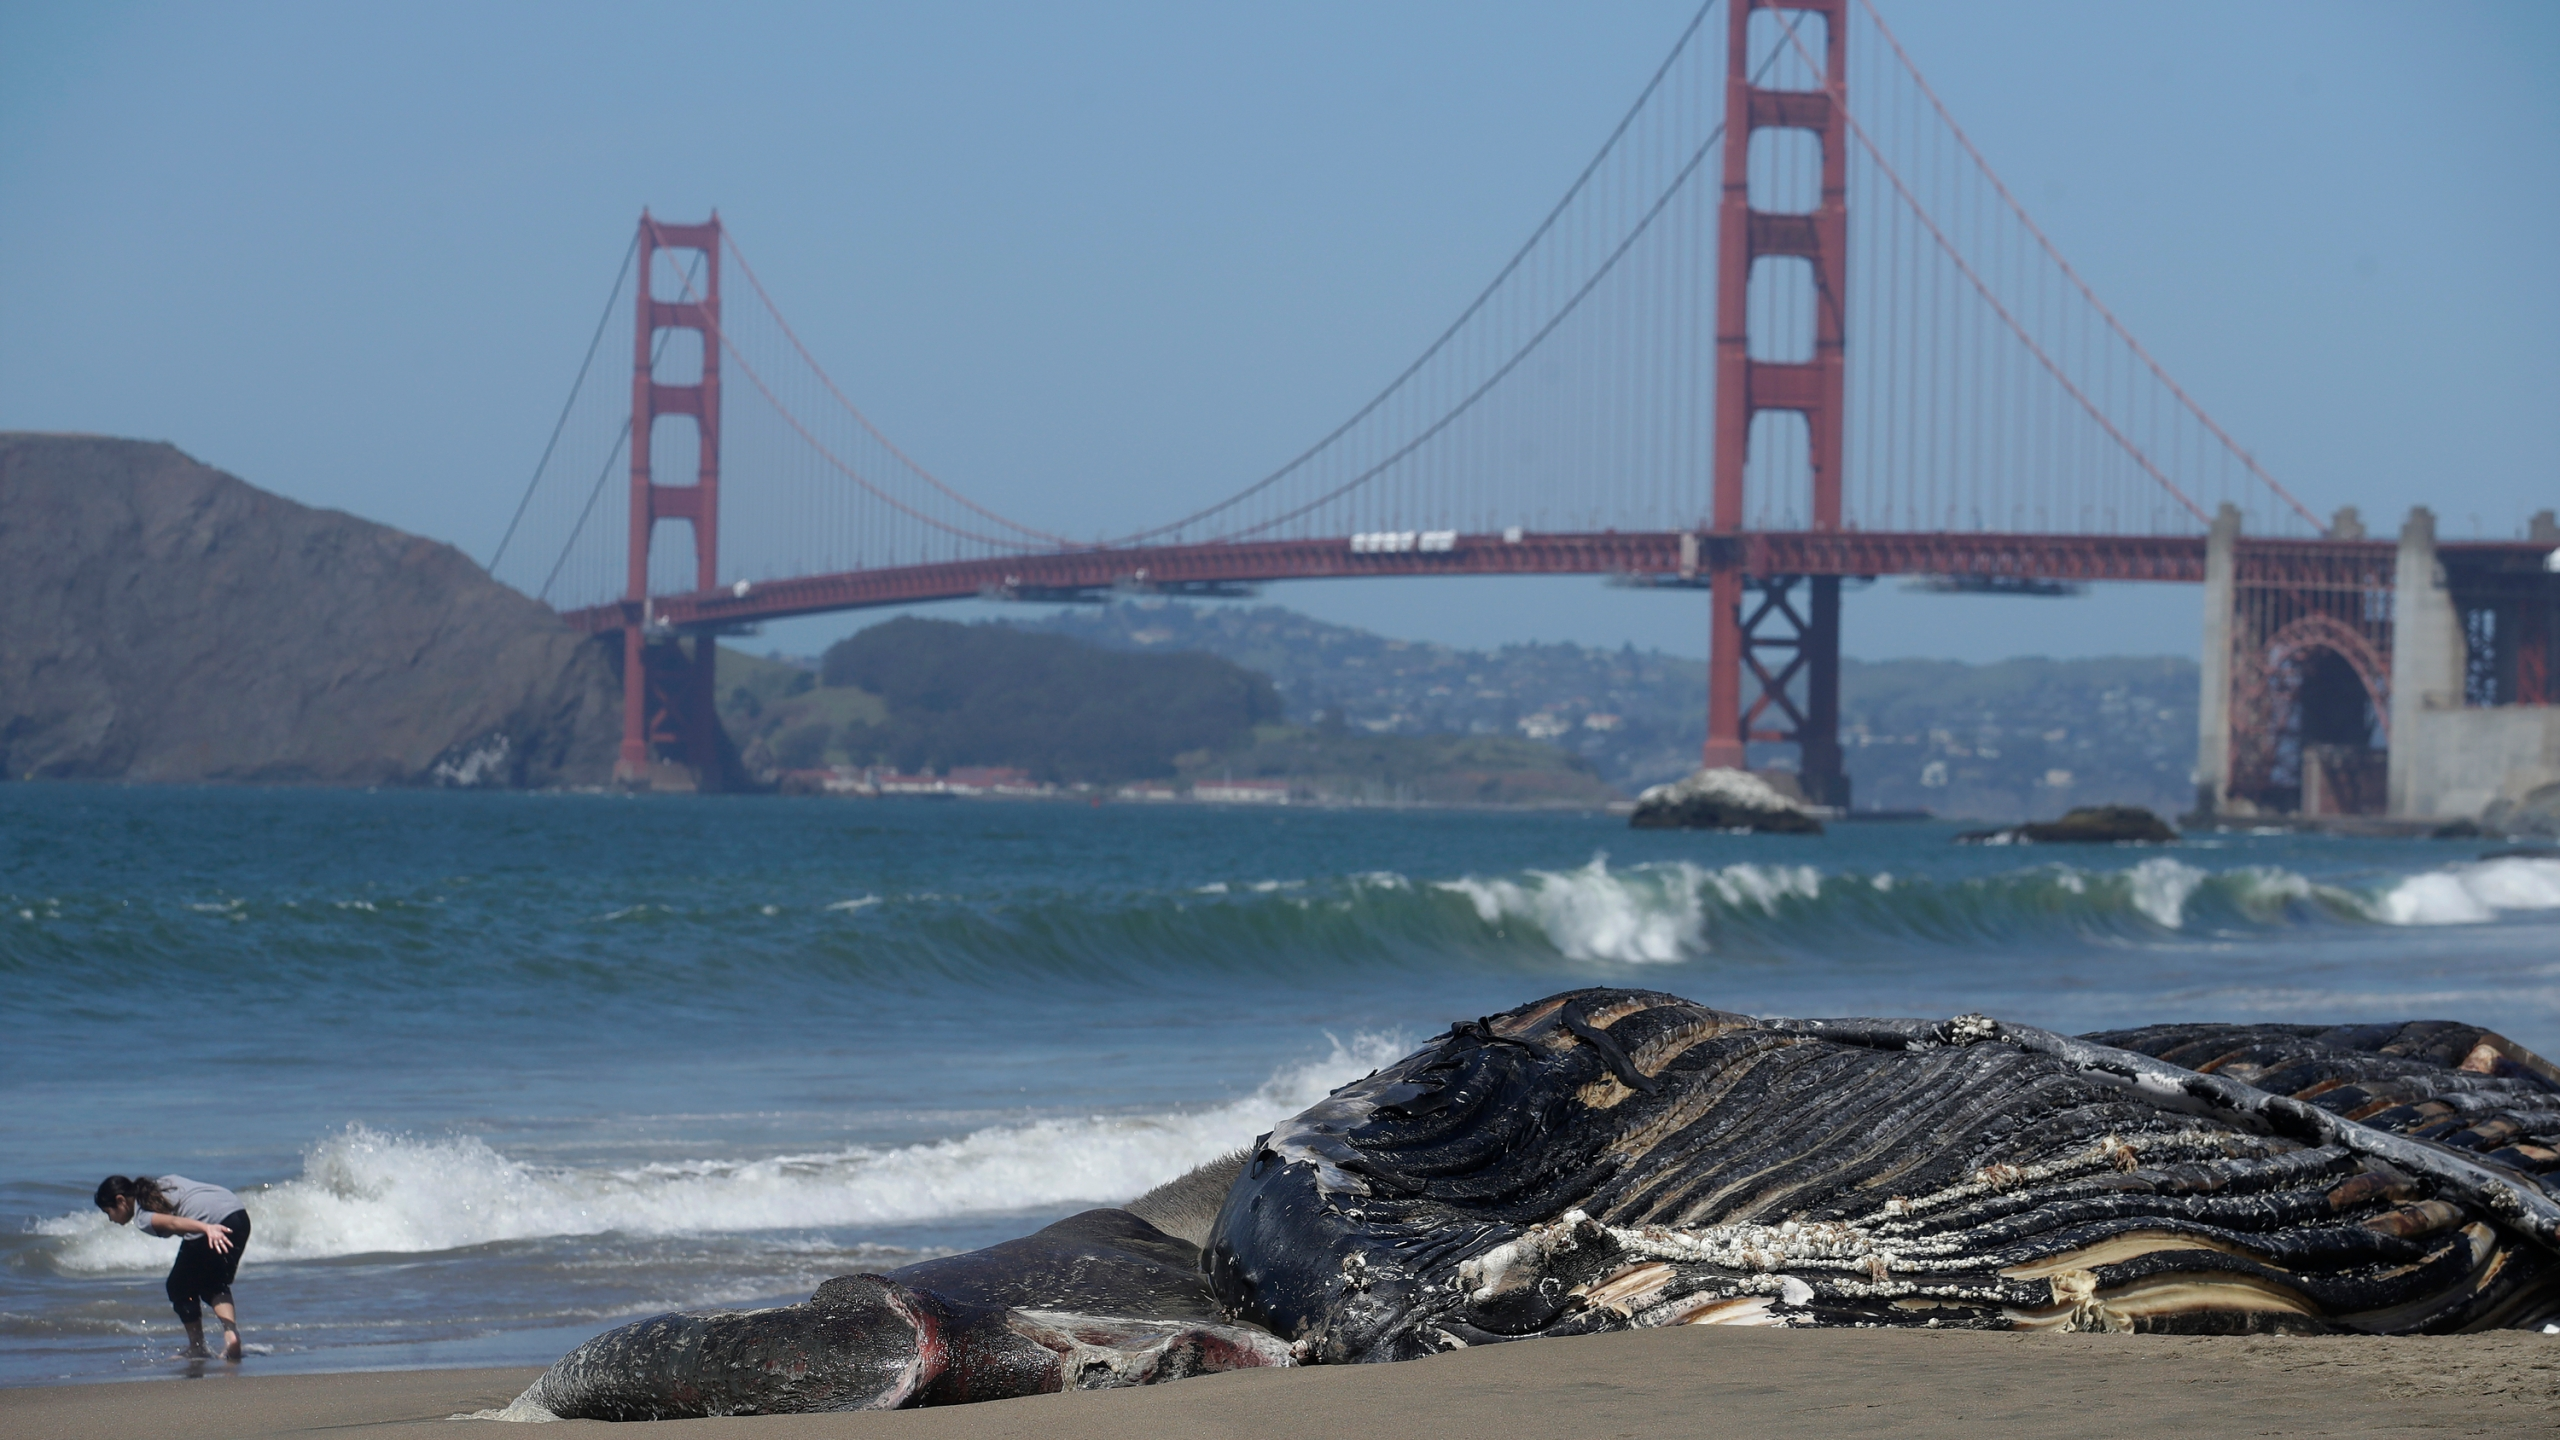 In this Tuesday, April 21, 2020, file photo, a dead humpback whale is shown in front of the Golden Gate Bridge at Baker Beach in San Francisco. (AP Photo/Jeff Chiu, File)